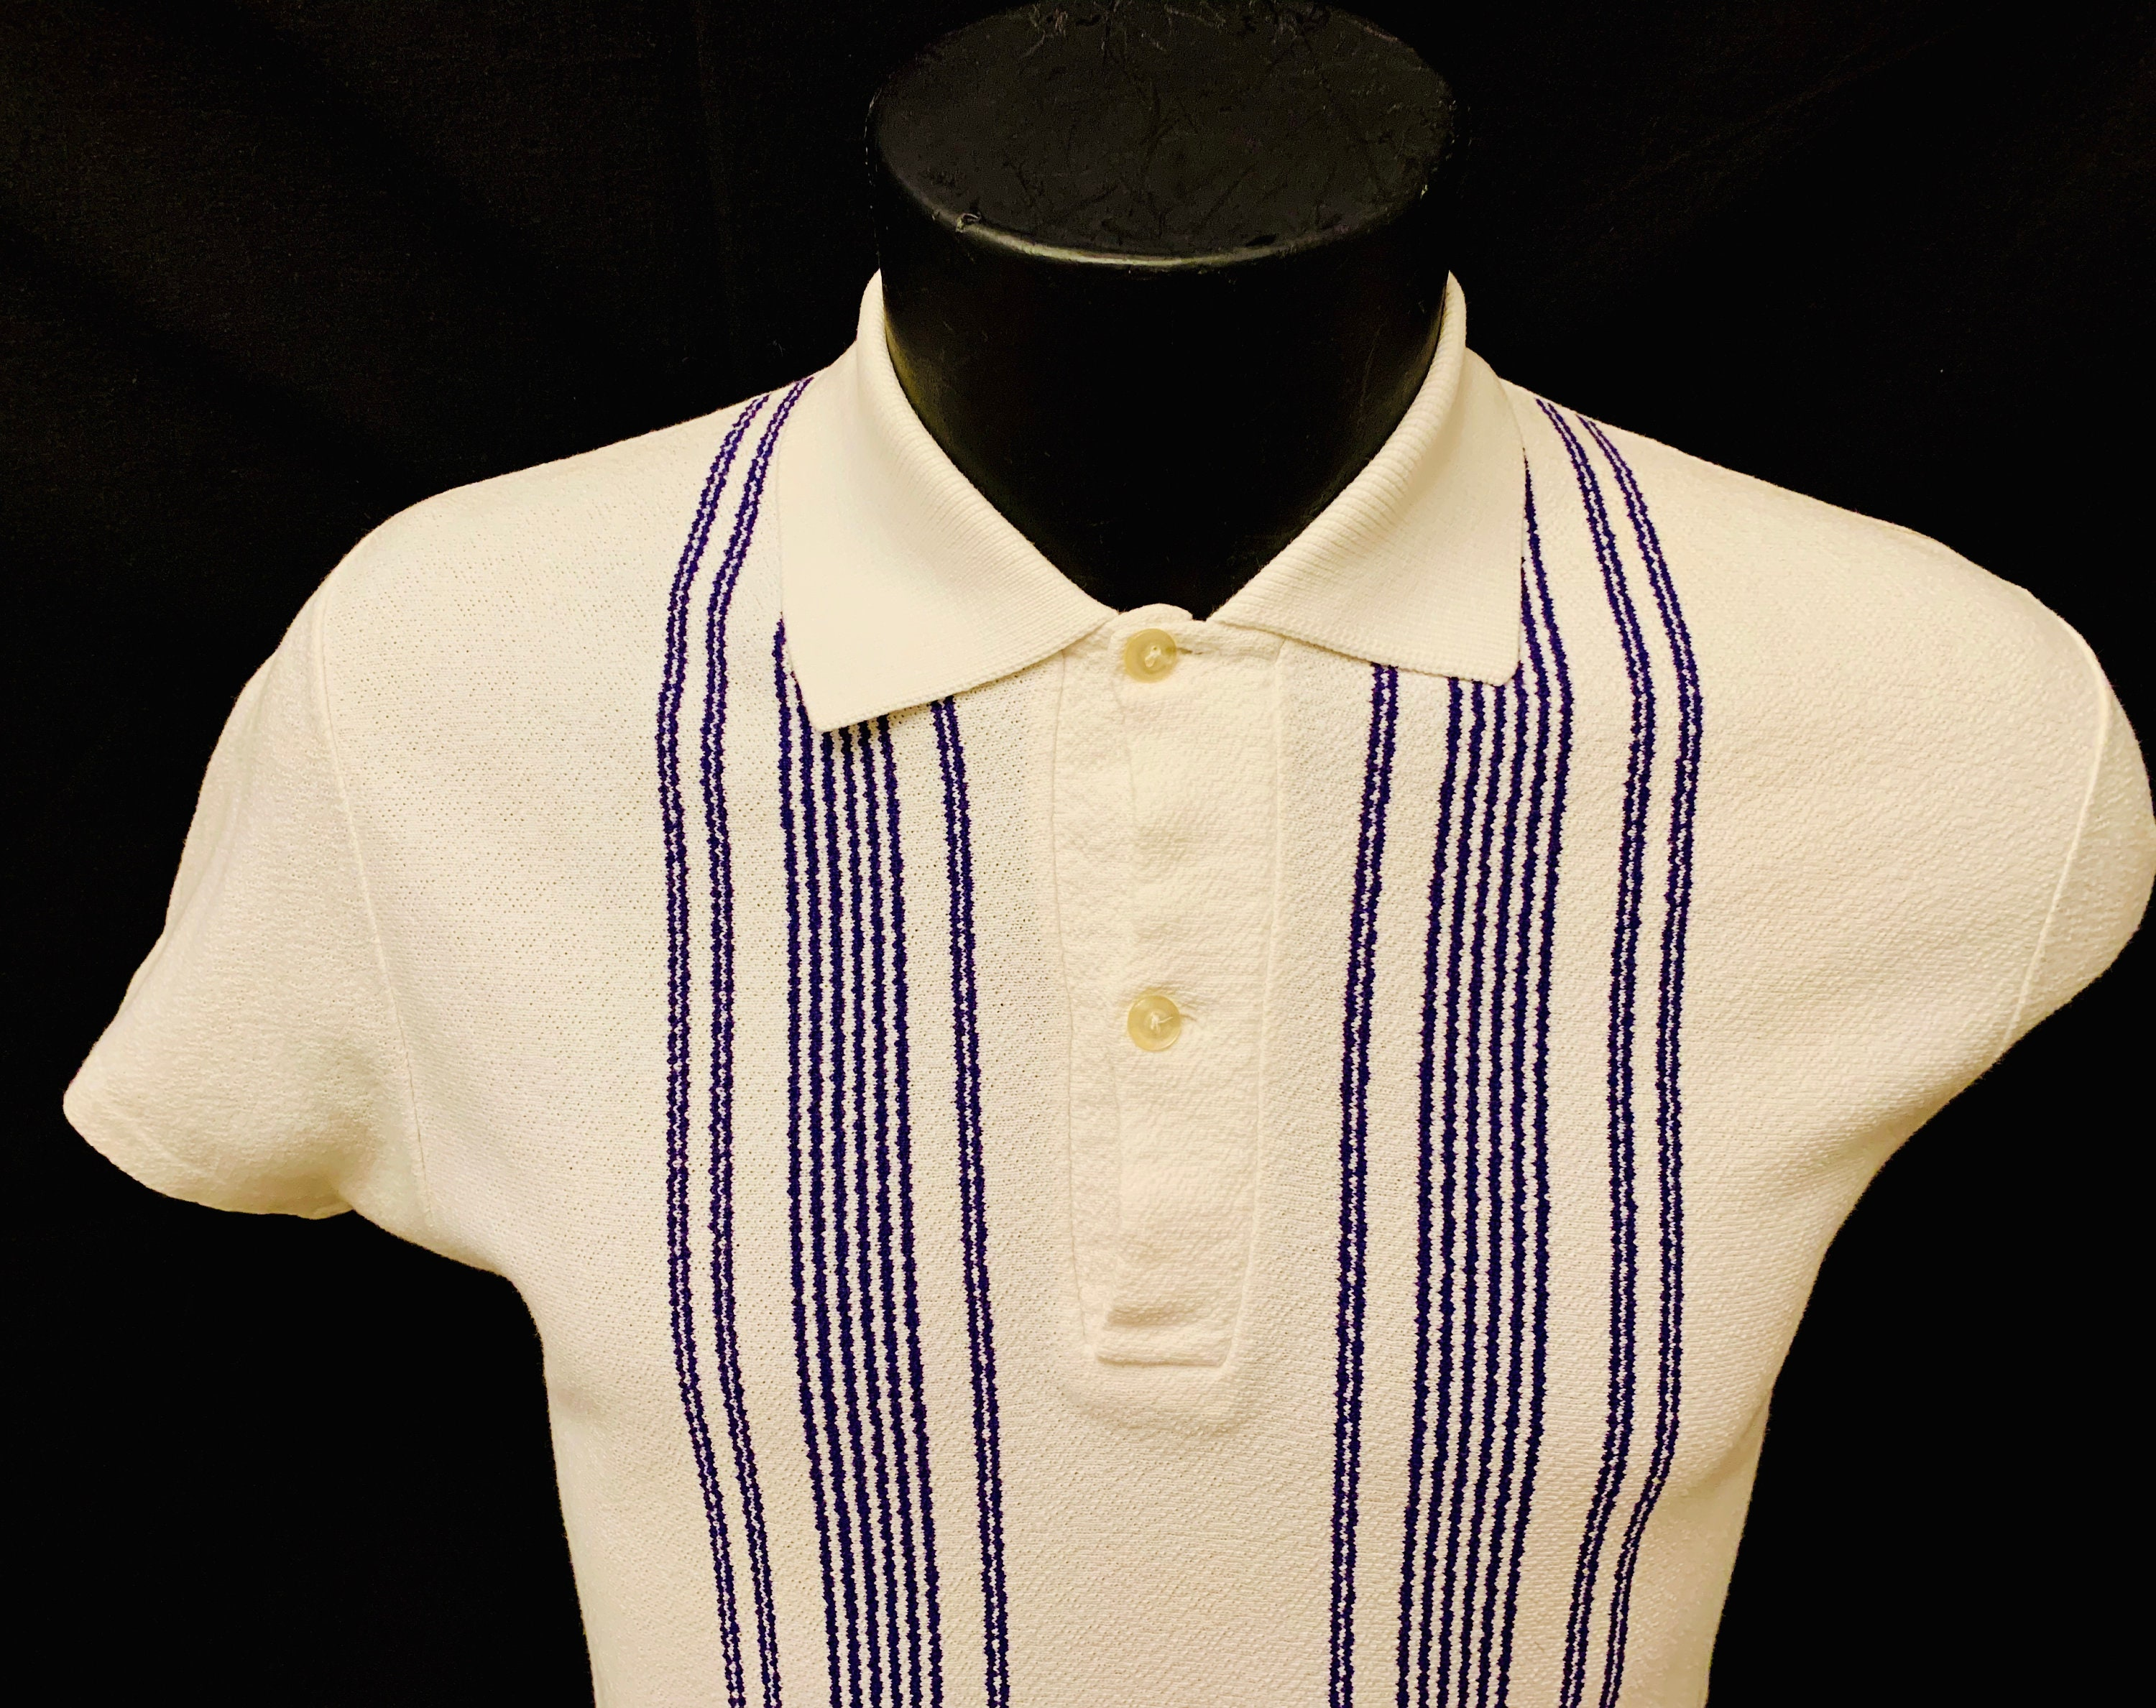 1950s Men's Ties, Bow Ties – Vintage, Skinny, Knit 1950s Mens White  Blue Vertical Striped Cotton Polo Top $139.83 AT vintagedancer.com